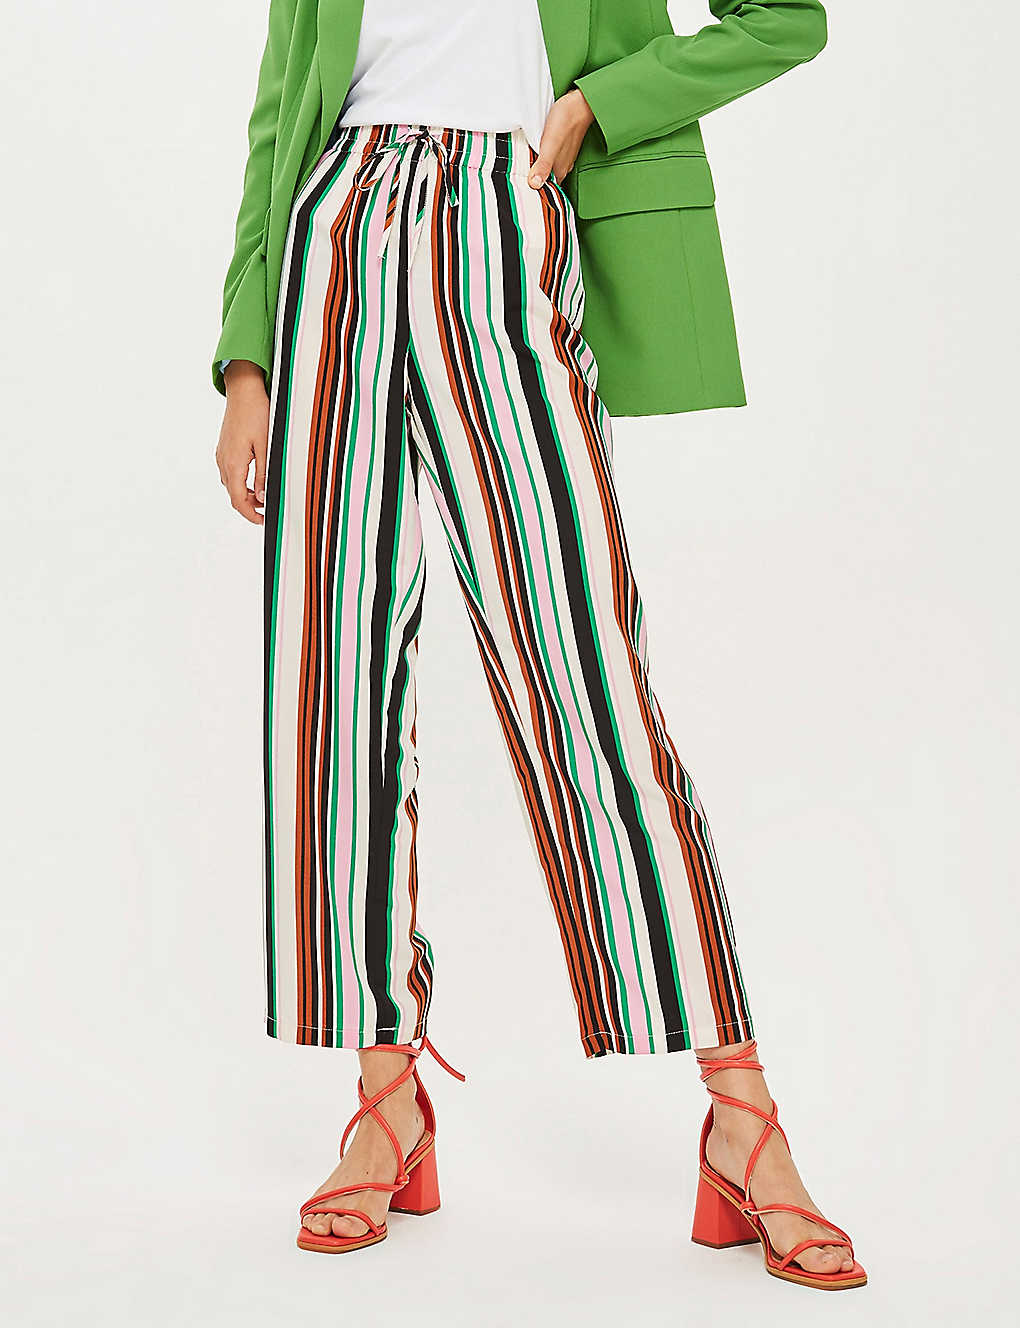 Striped leg trousers wide TOPSHOP woven UVGMzqSp